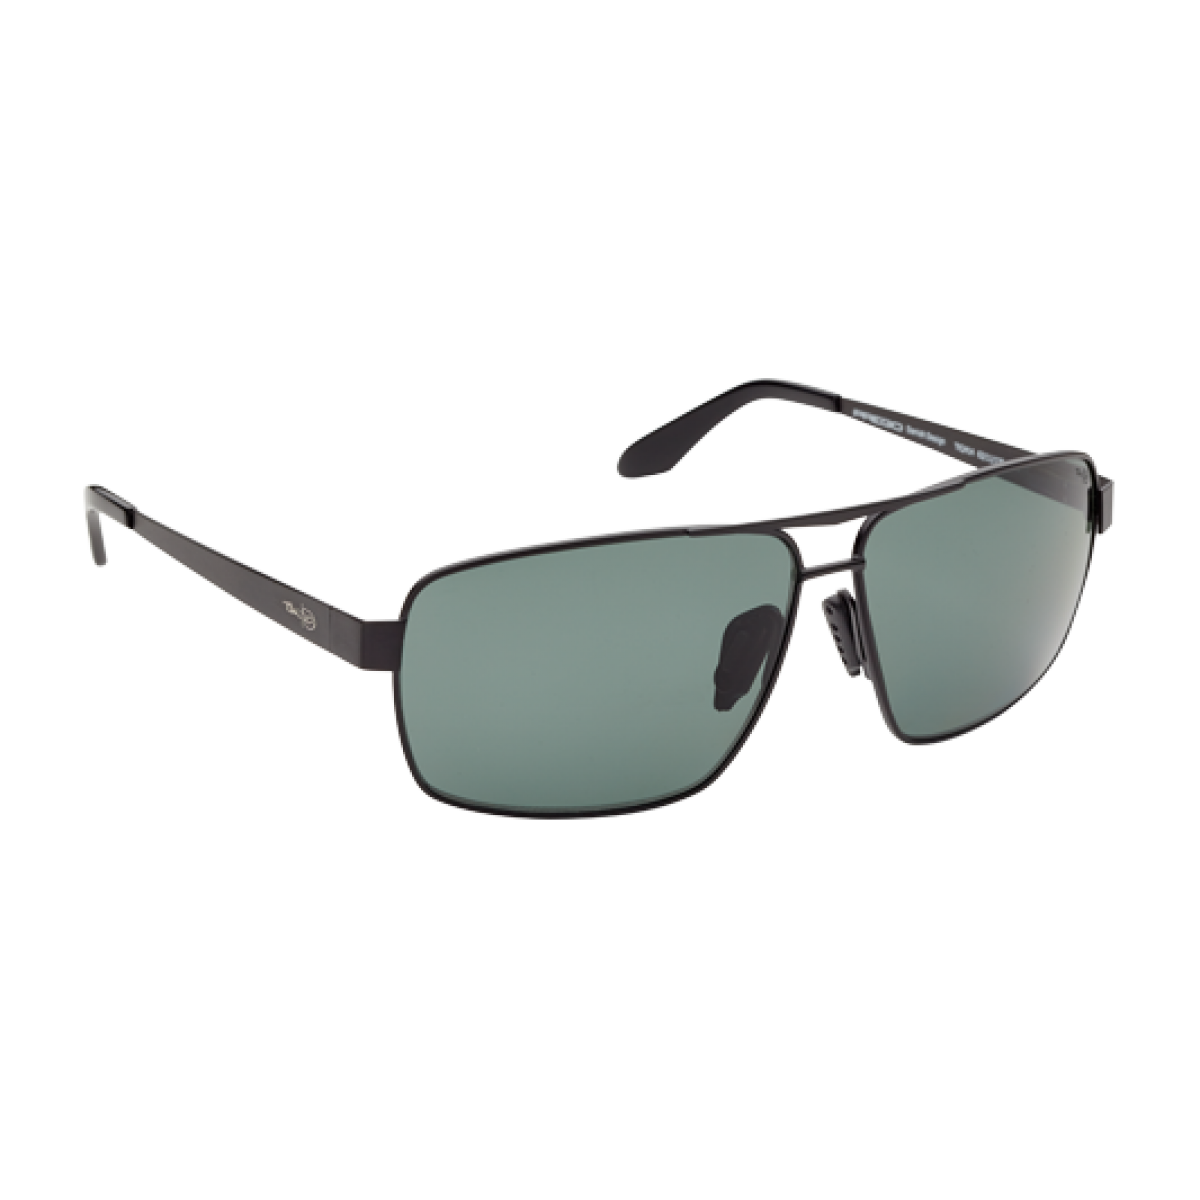 Tom Kristensen Solbrille Model TK2414 Polarized-3